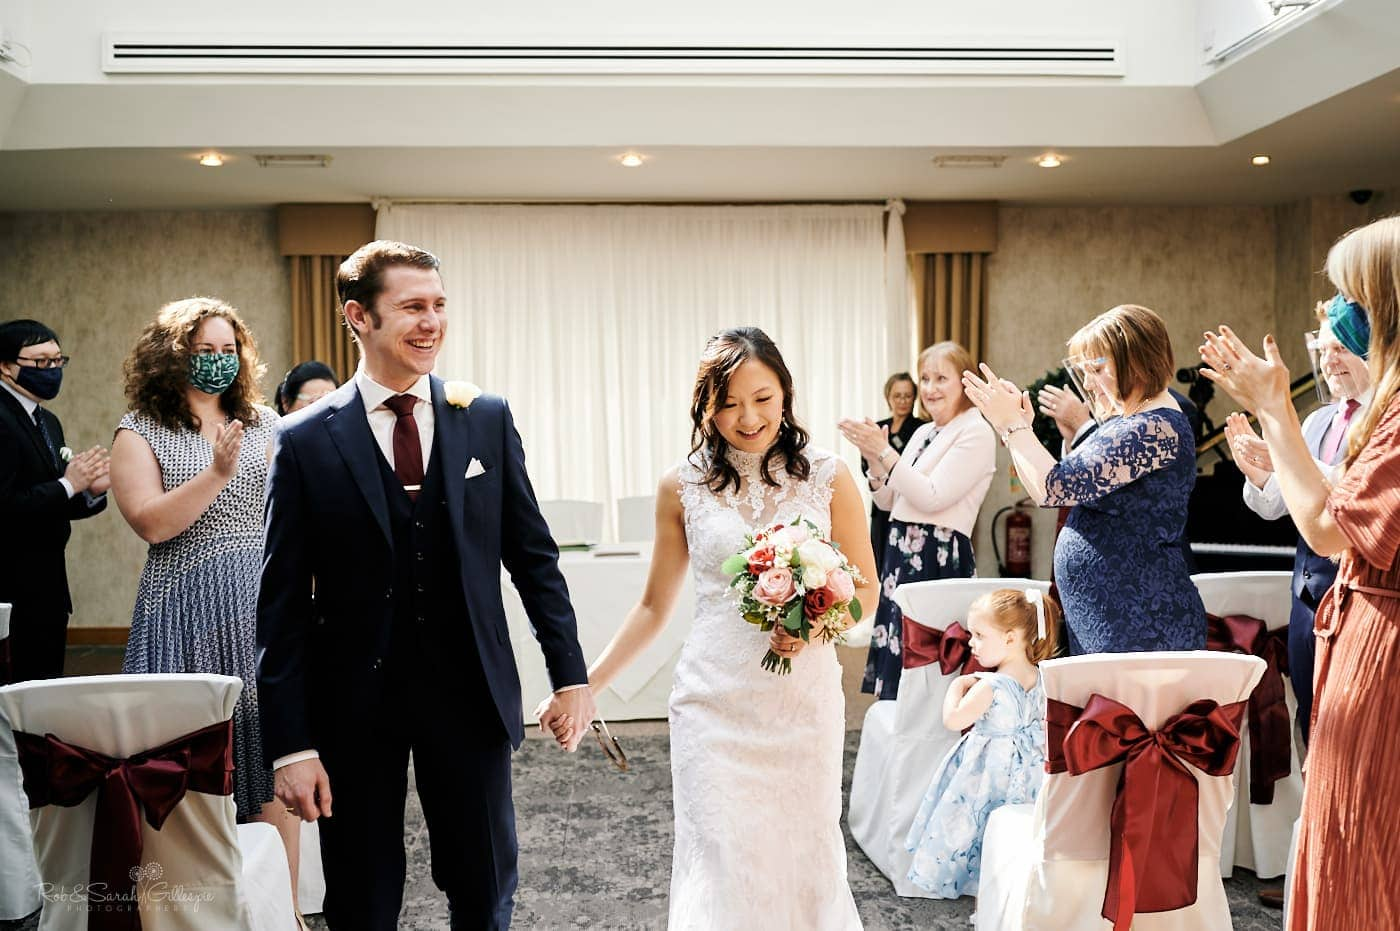 Bride and groom exit ceremony at Mallory Court